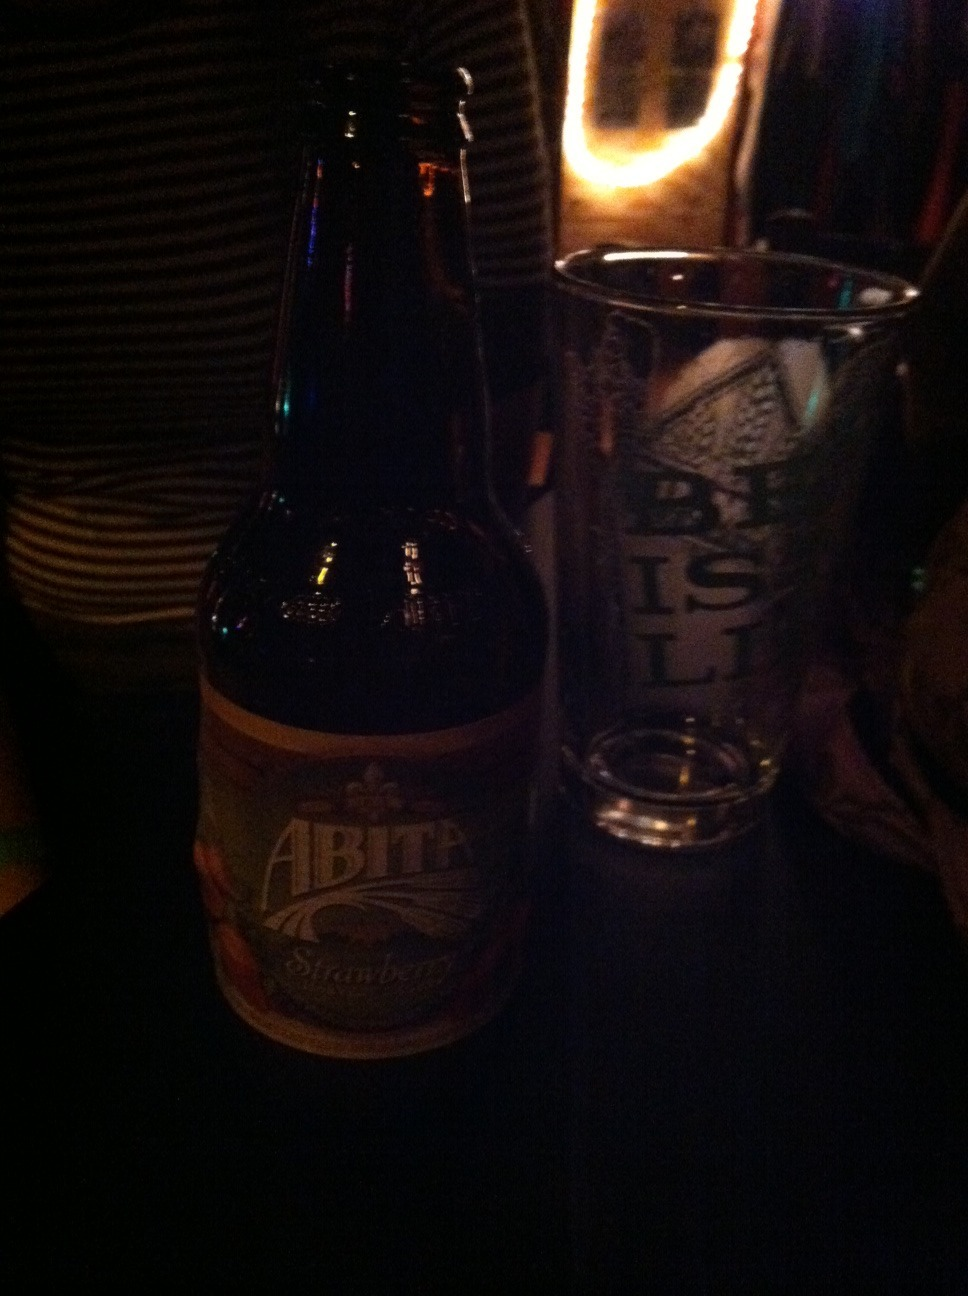 Abita Strawberry Harvest Lager @ Latitude 44 in Sioux Falls, SD With Universe Contest, Talk Rock, and The New FM